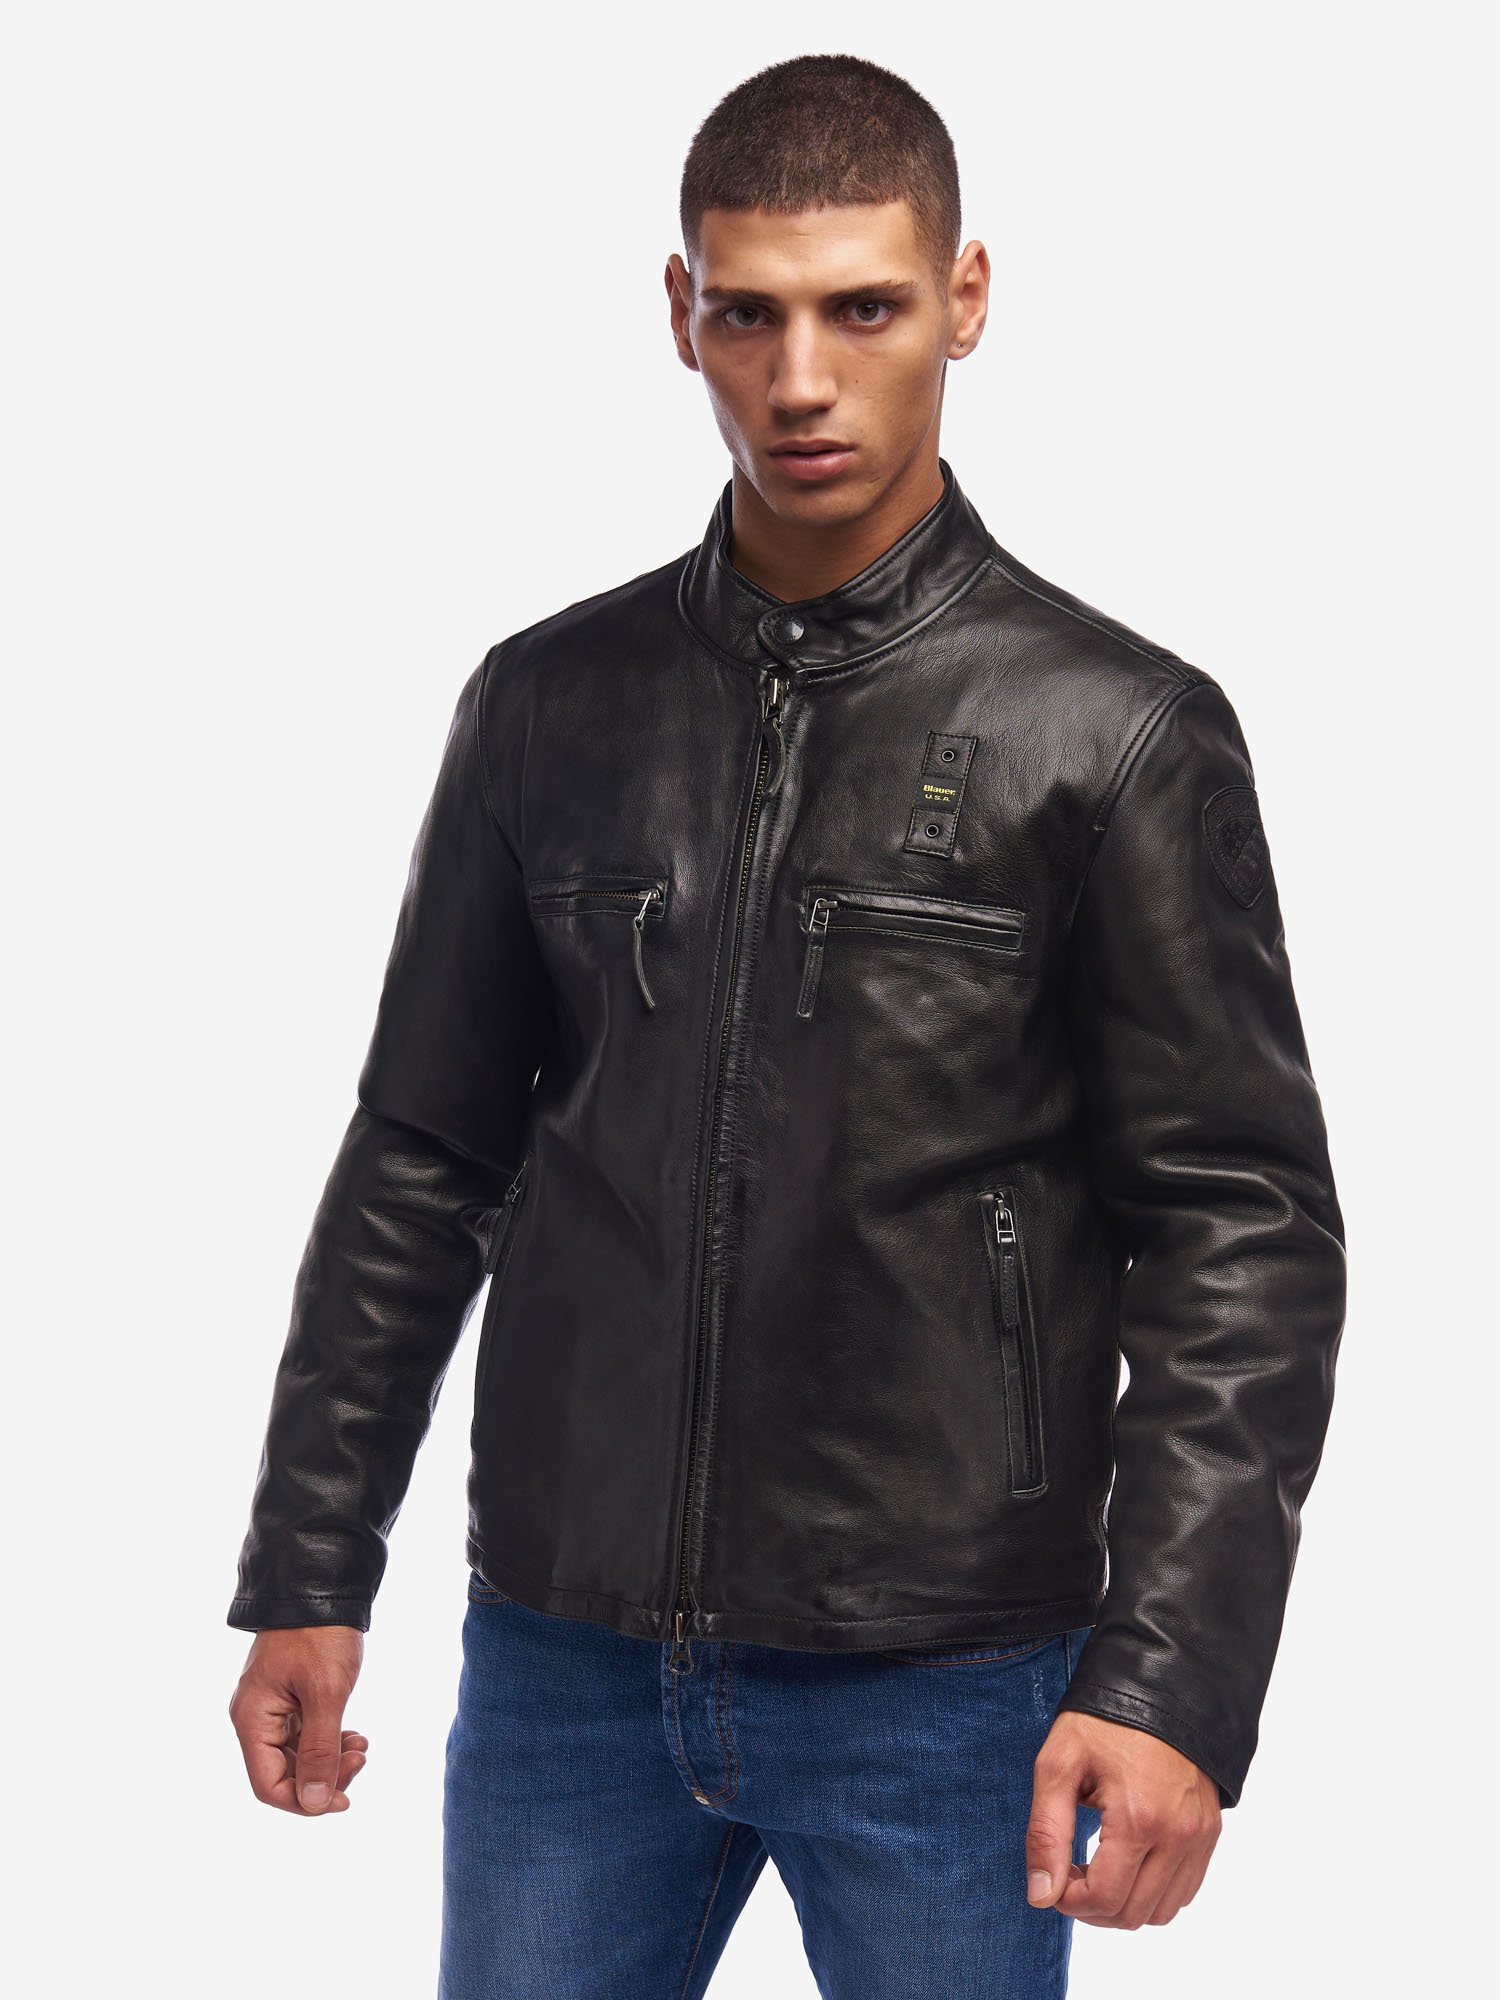 WATSON LIGHTWEIGHT PADDED LEATHER JACKET - Blauer